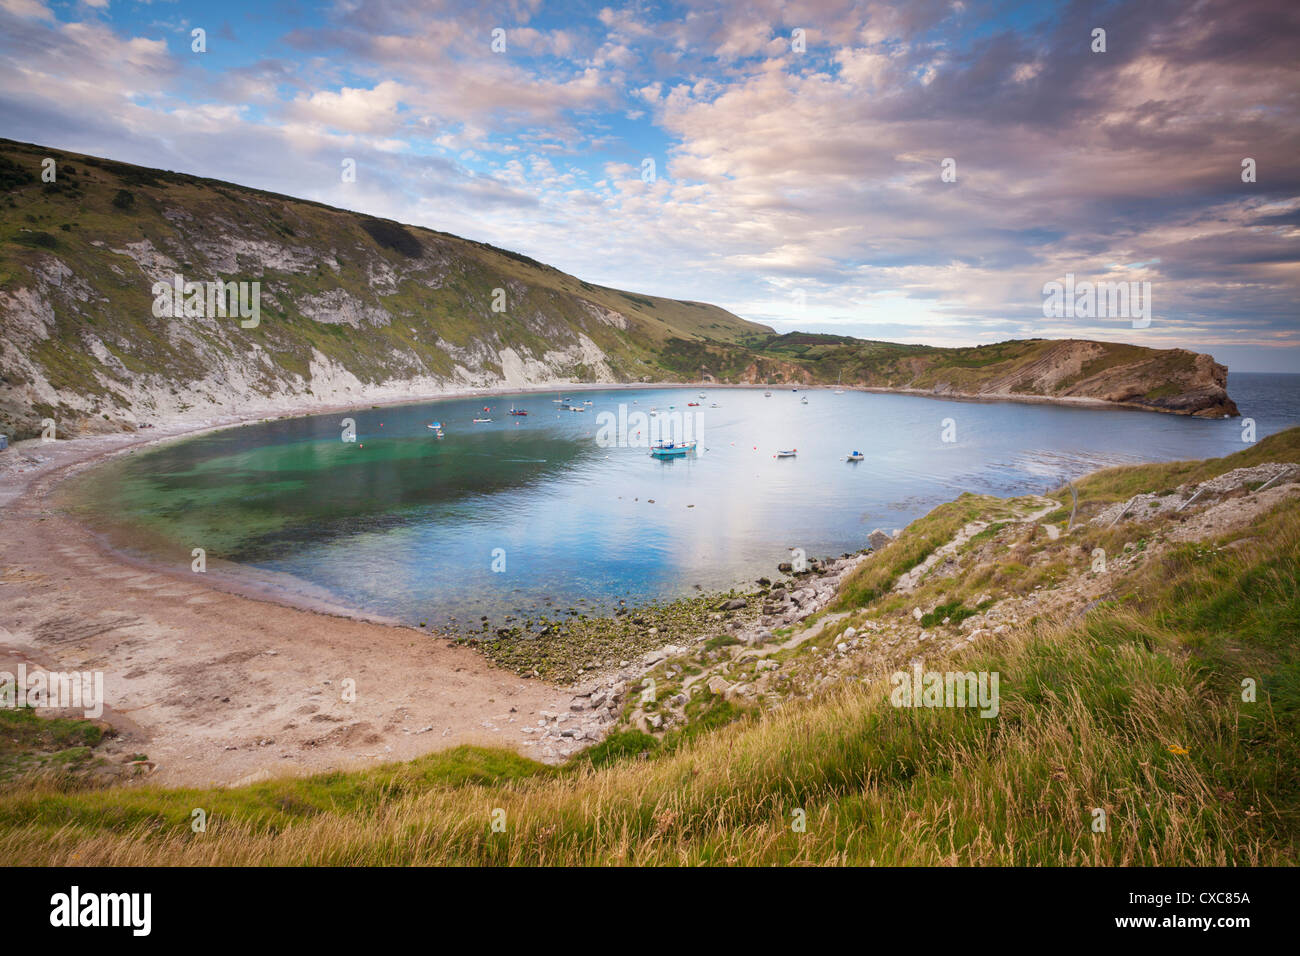 Lulworth Cove, a perfect horseshoe-shaped bay, Jurassic Coast, UNESCO World Heritage Site, Dorset, England, United - Stock Image